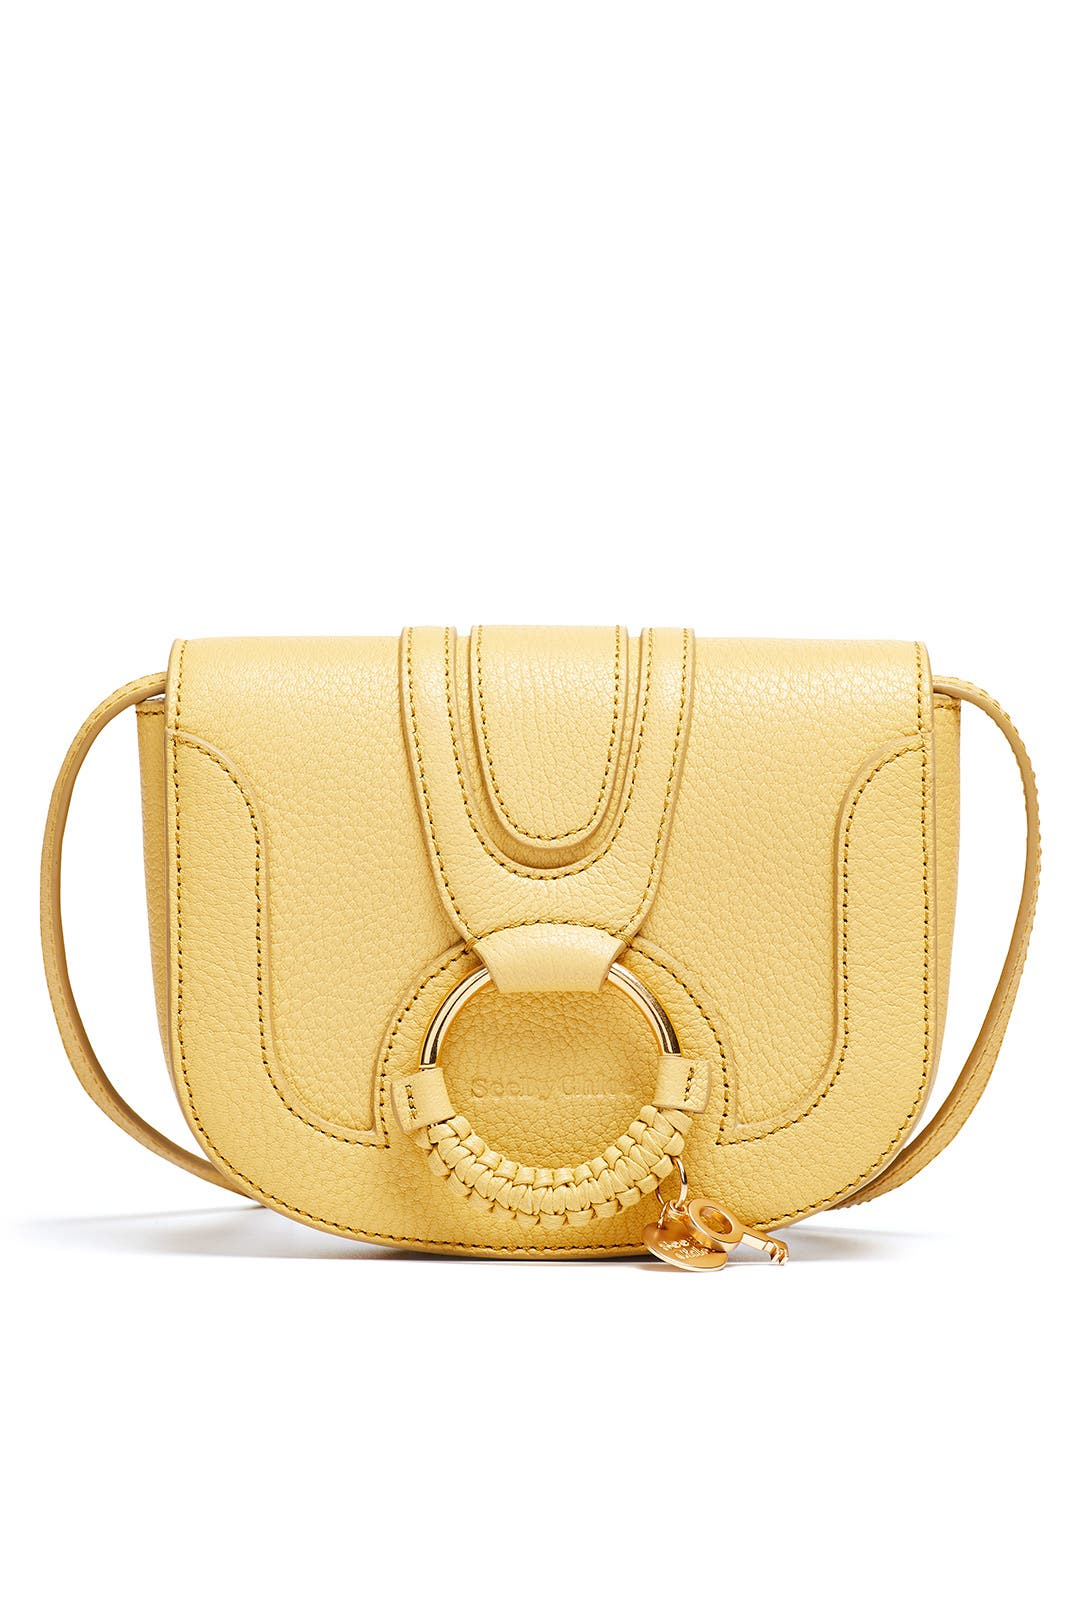 6e746ebe74e39 Pineapple Hana Crossbody by See by Chloe Accessories for $45   Rent ...